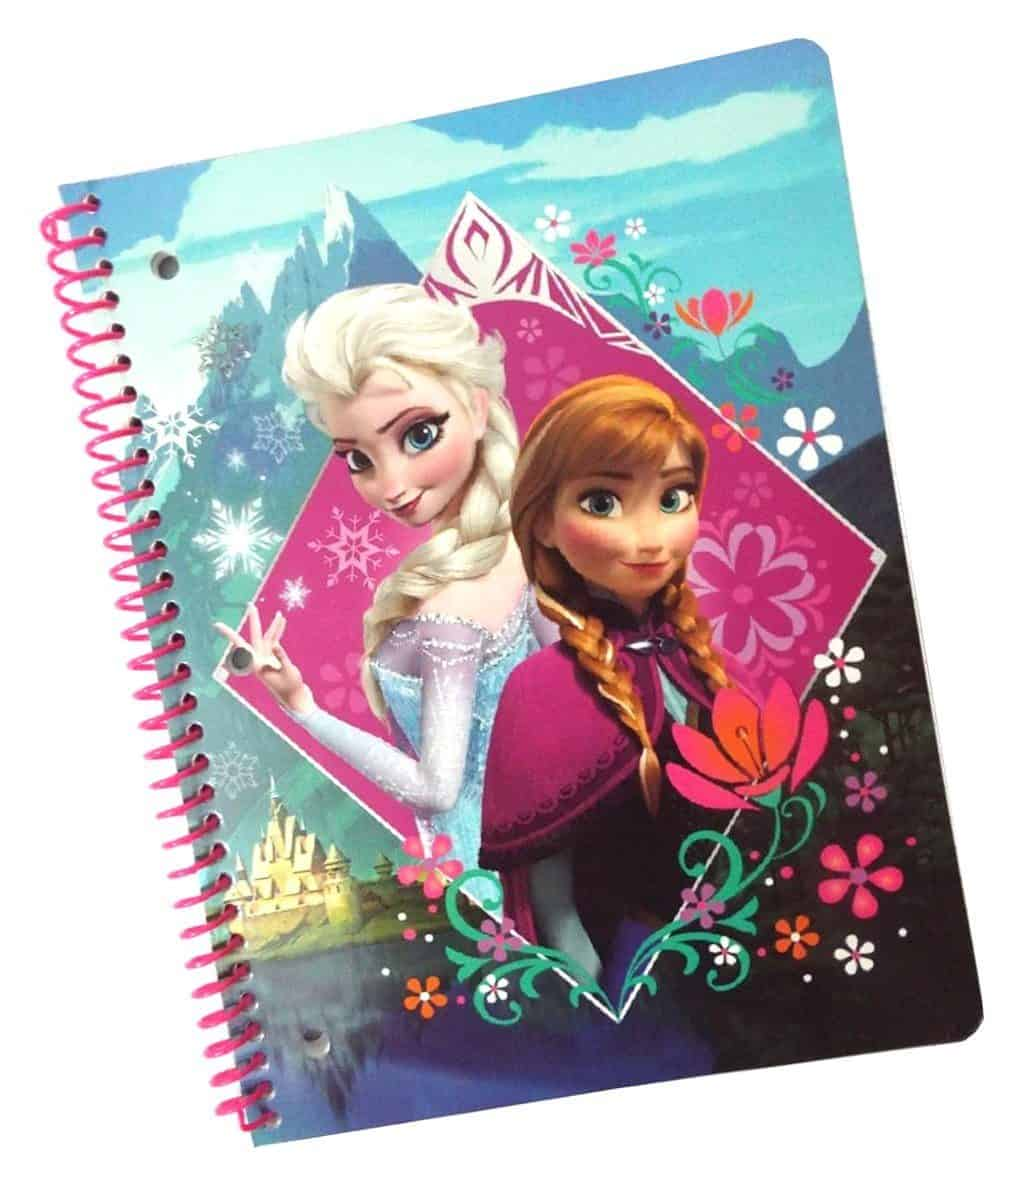 10 Hottest Back-To-School Items: anything with Frozen characters on it